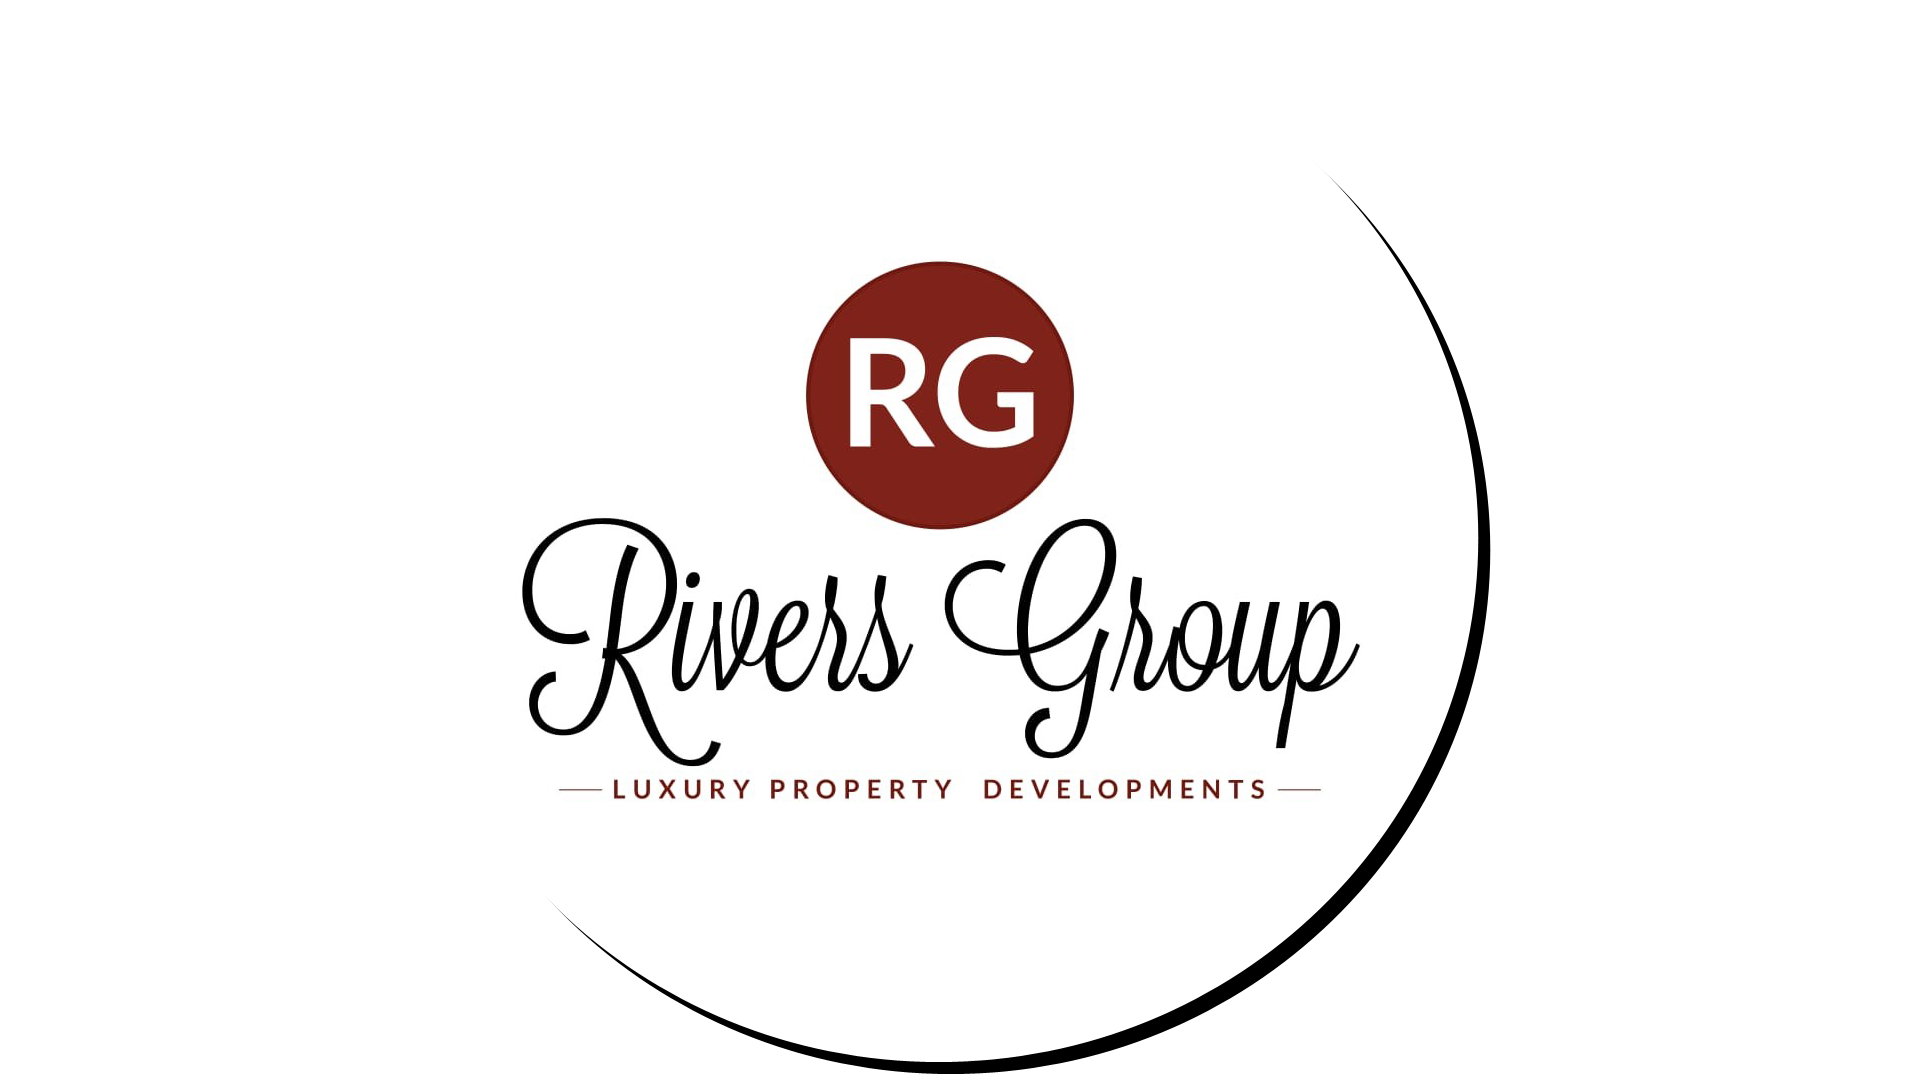 Rivers Group